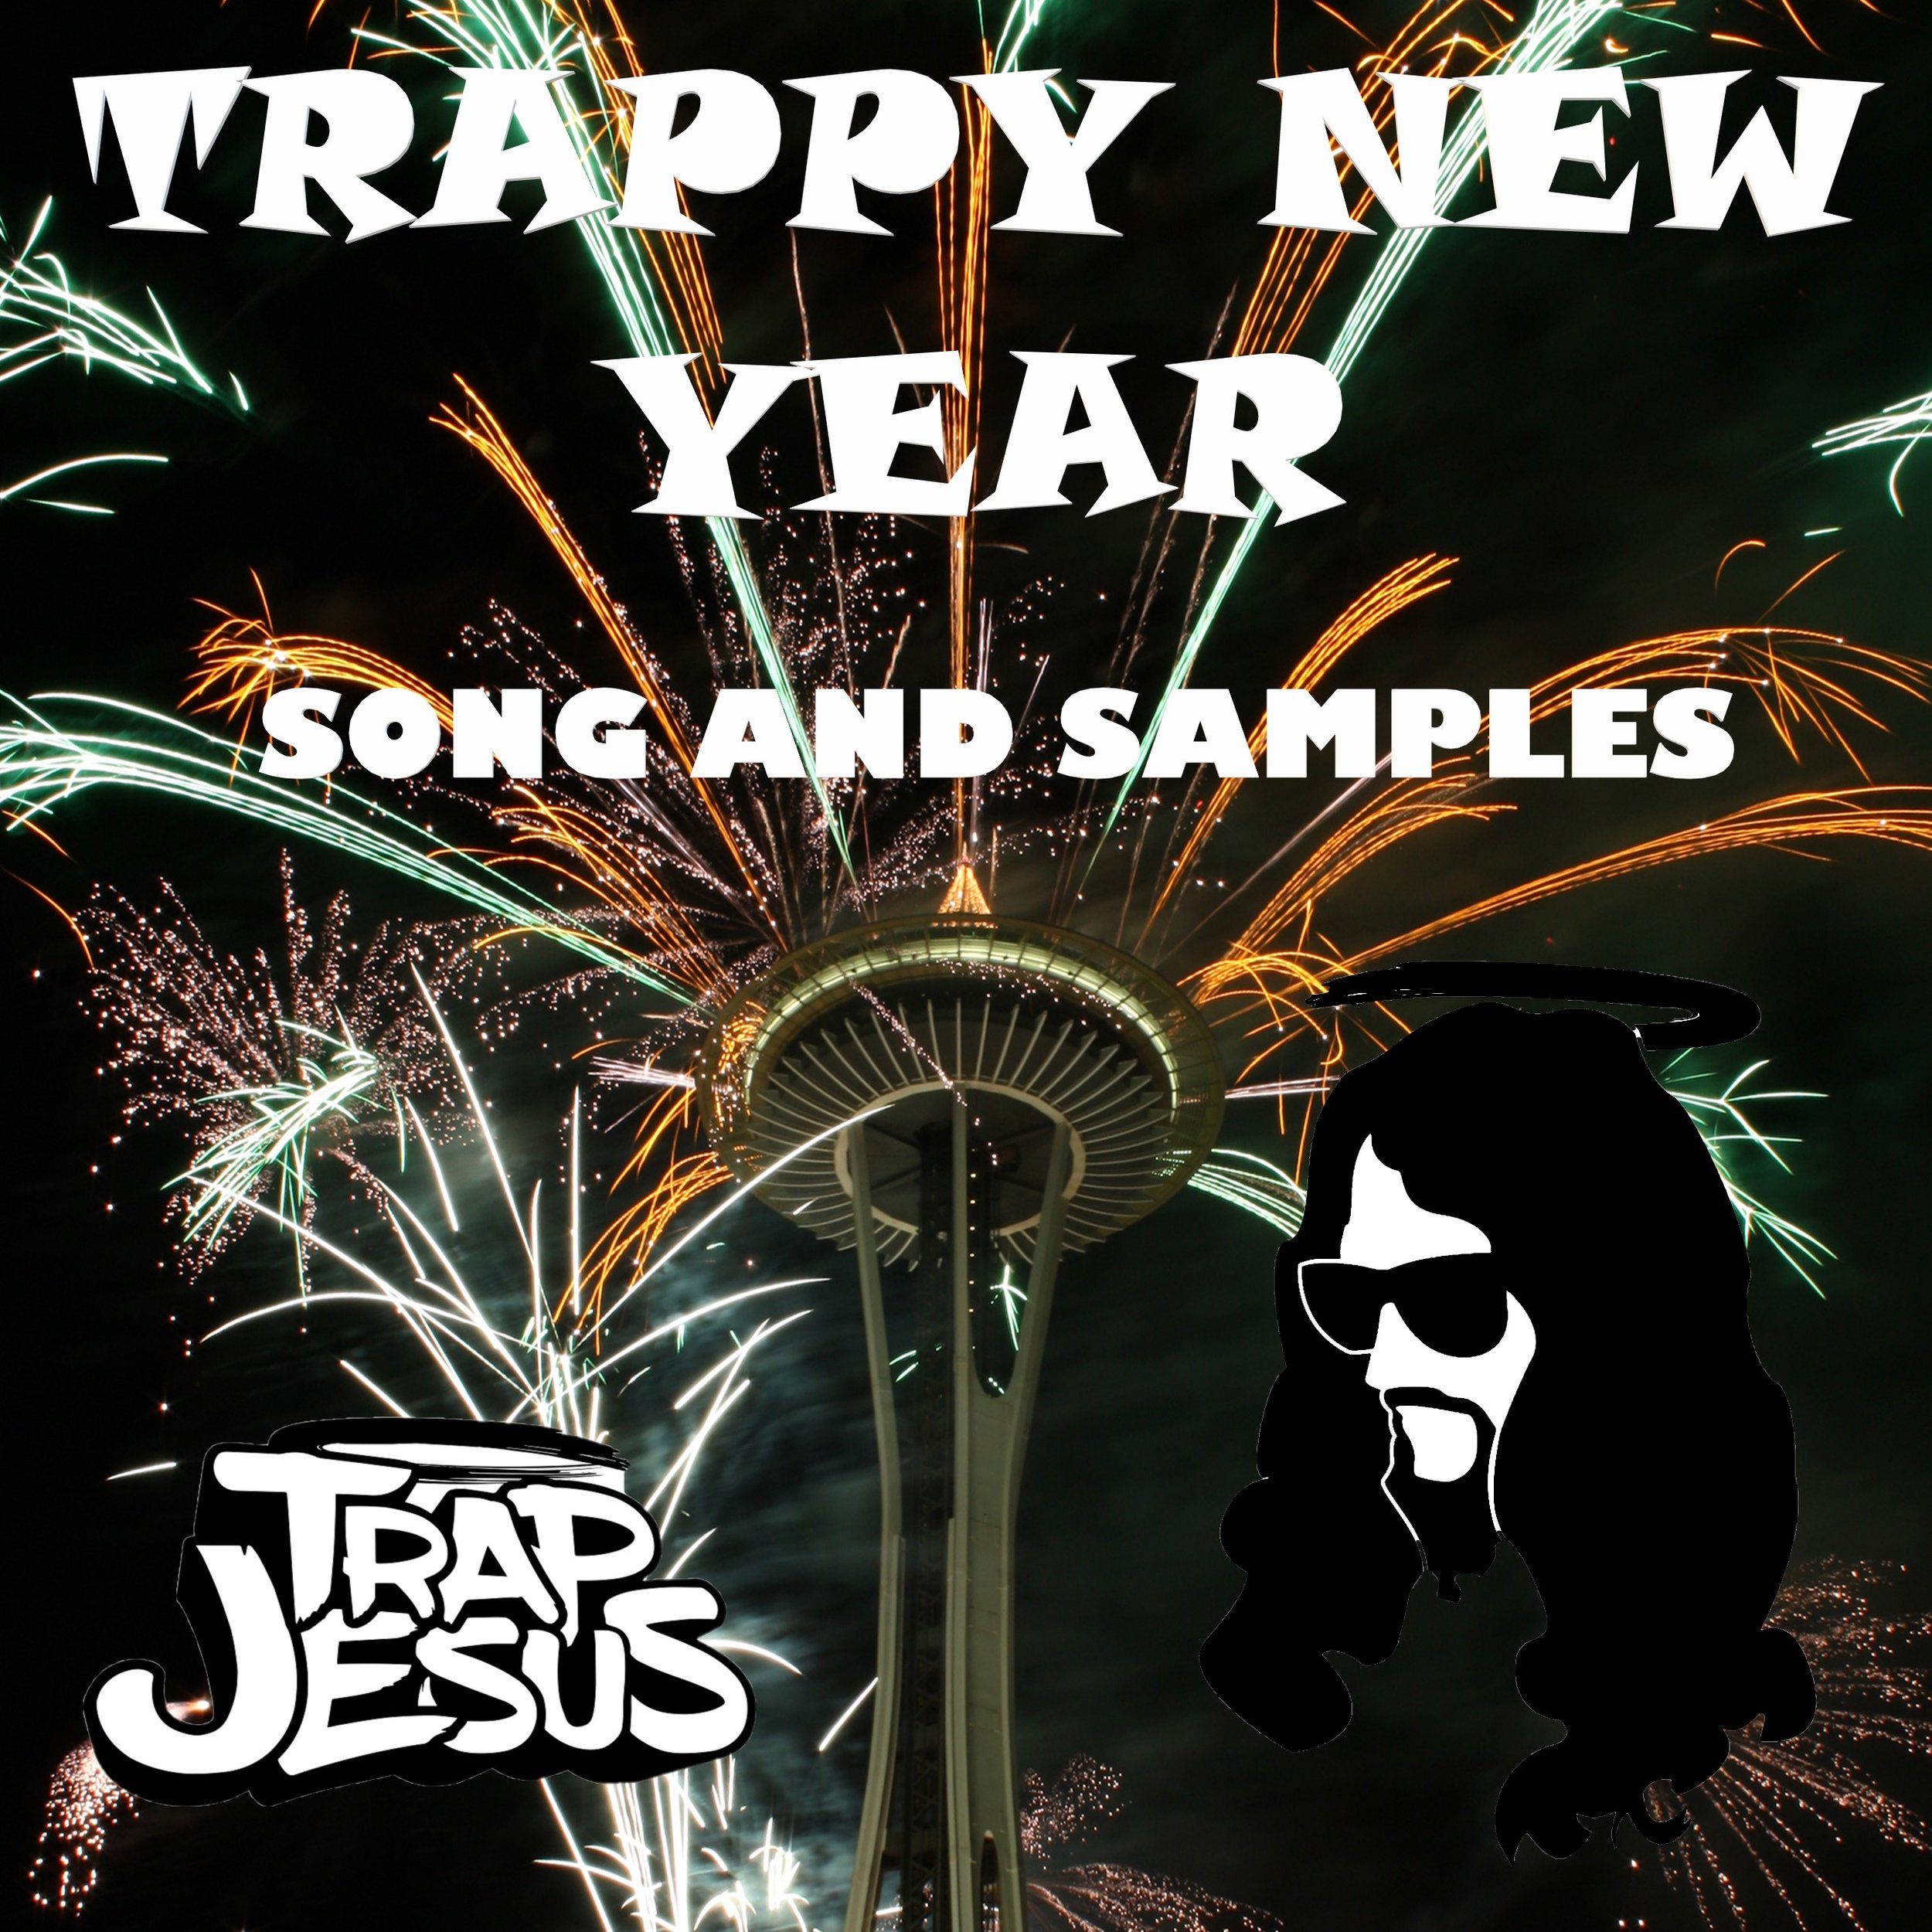 Trap Jesus - Trappy New Year Song and Samples